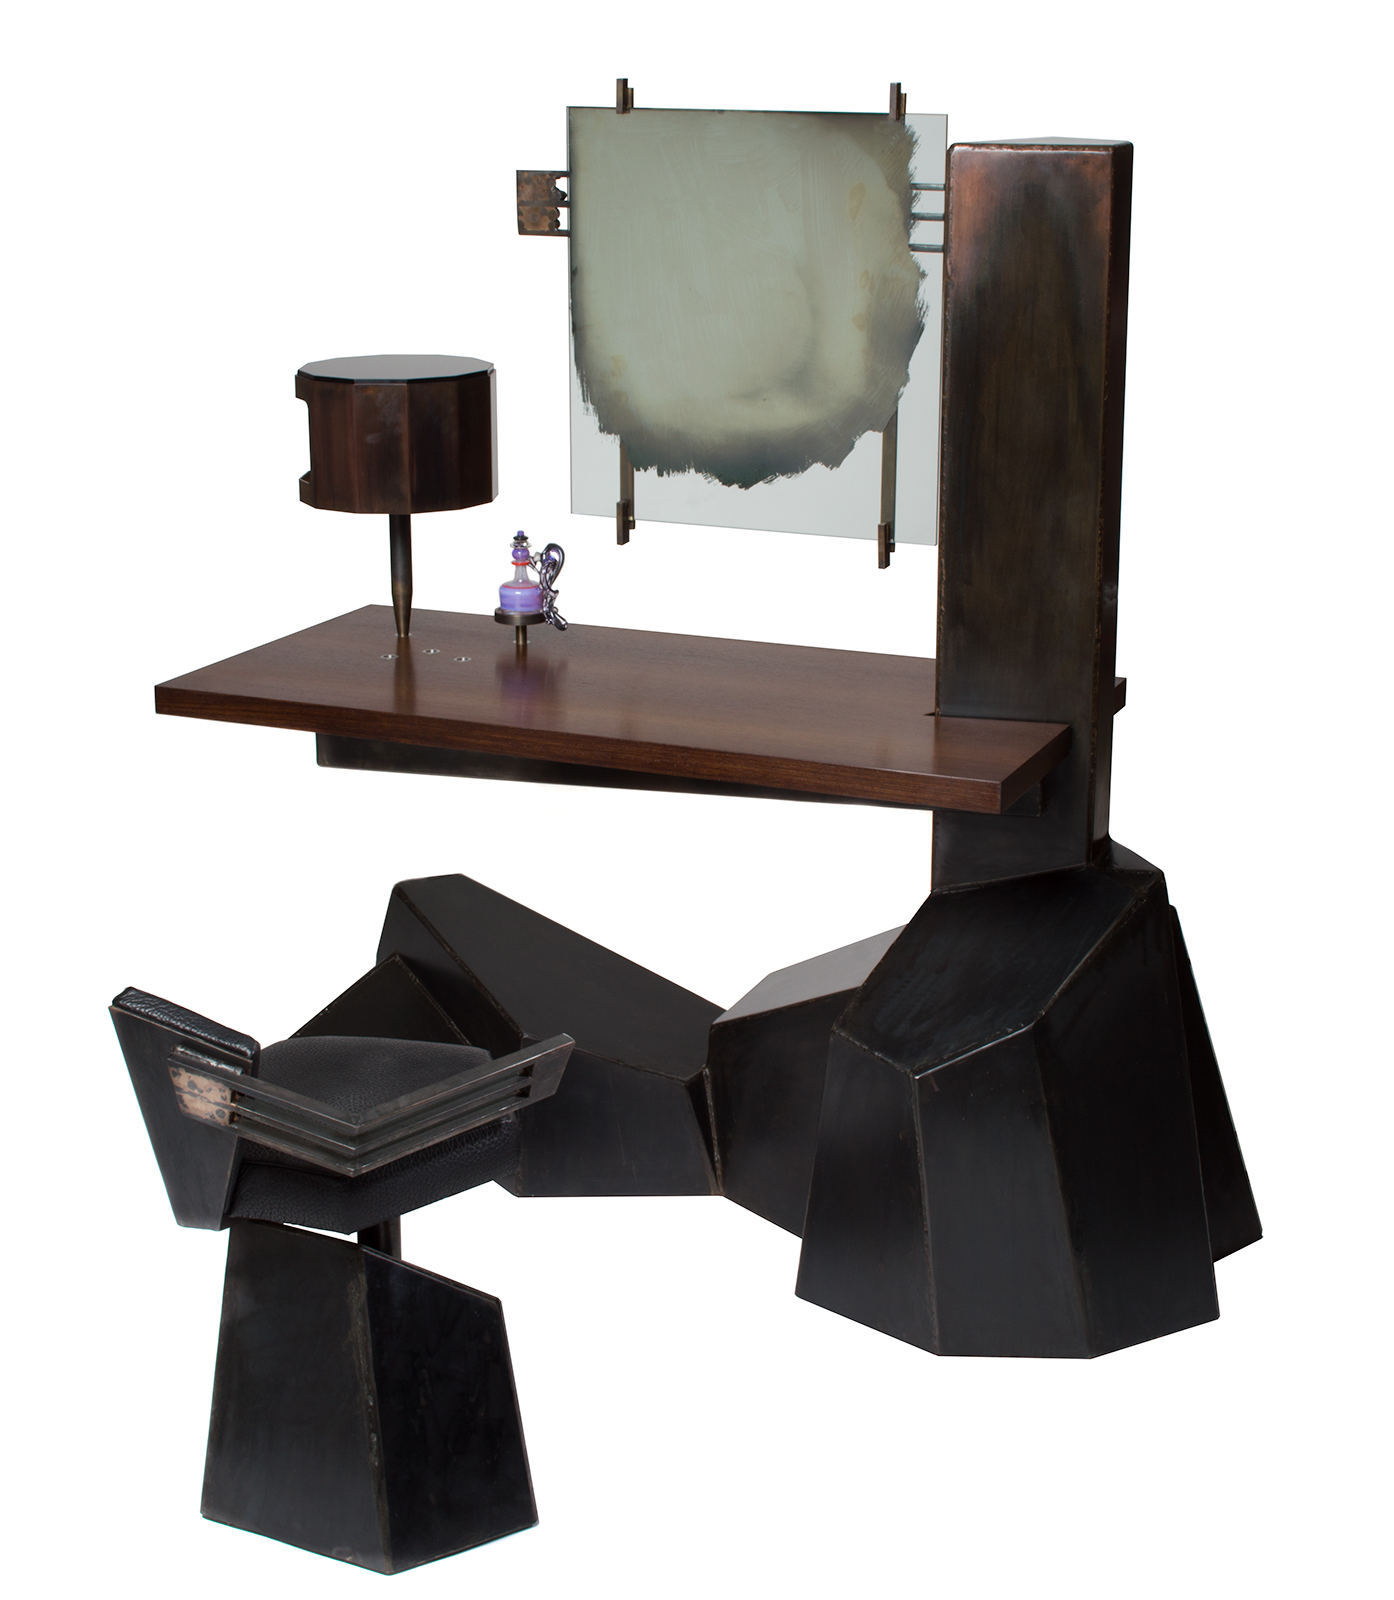 Datum Vanity and Chair by Chuck Moffit